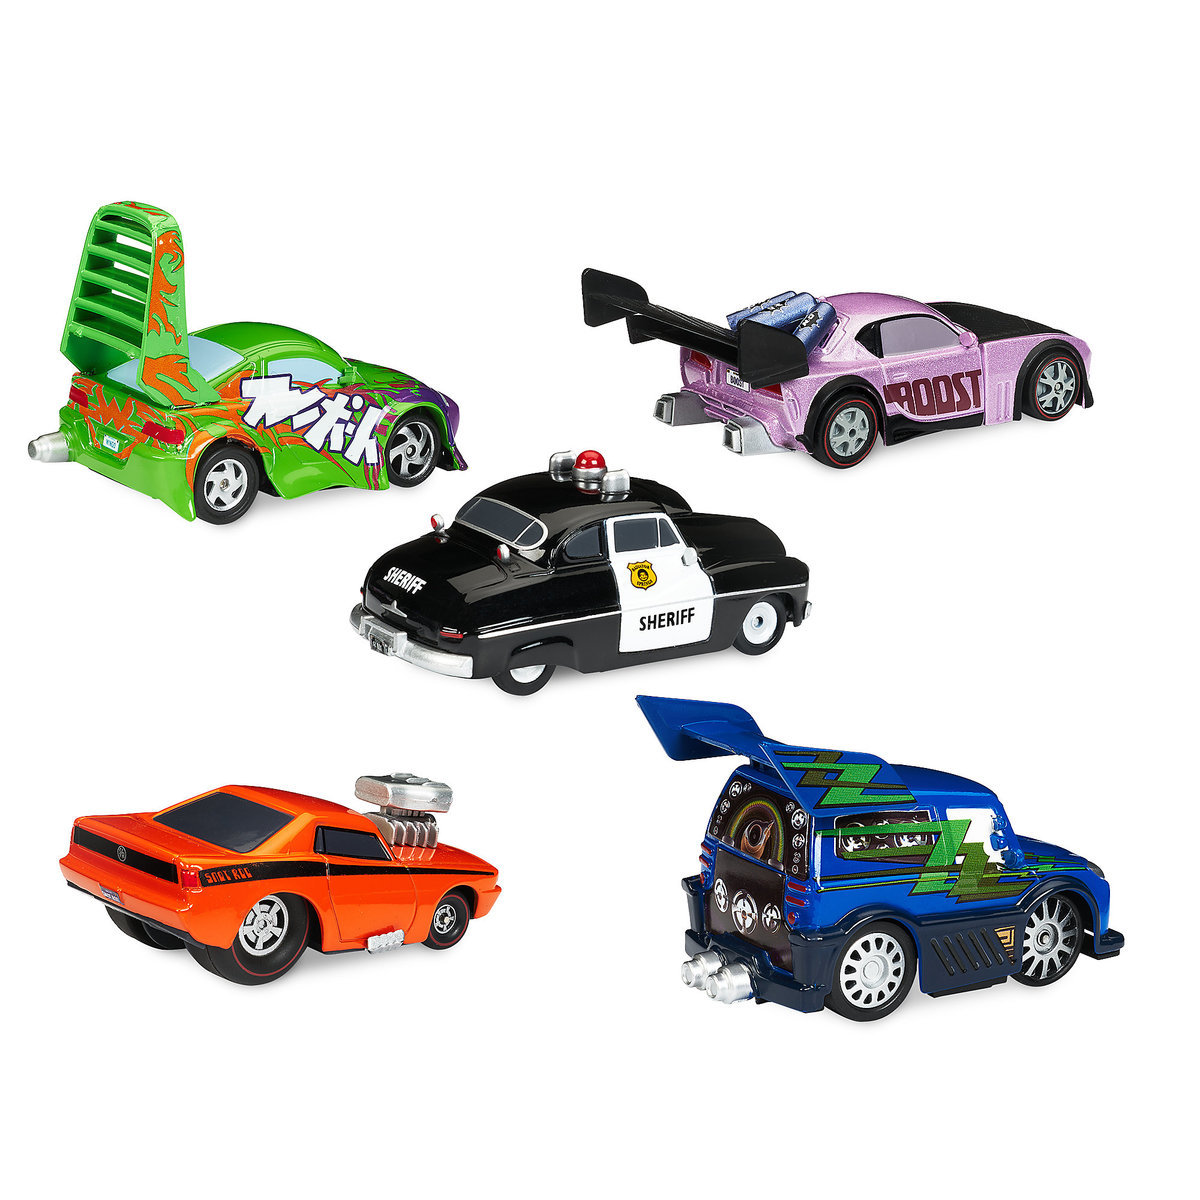 Sheriff & Tuner Cars Pull \'N\' Race Die Cast Set - Cars | shopDisney